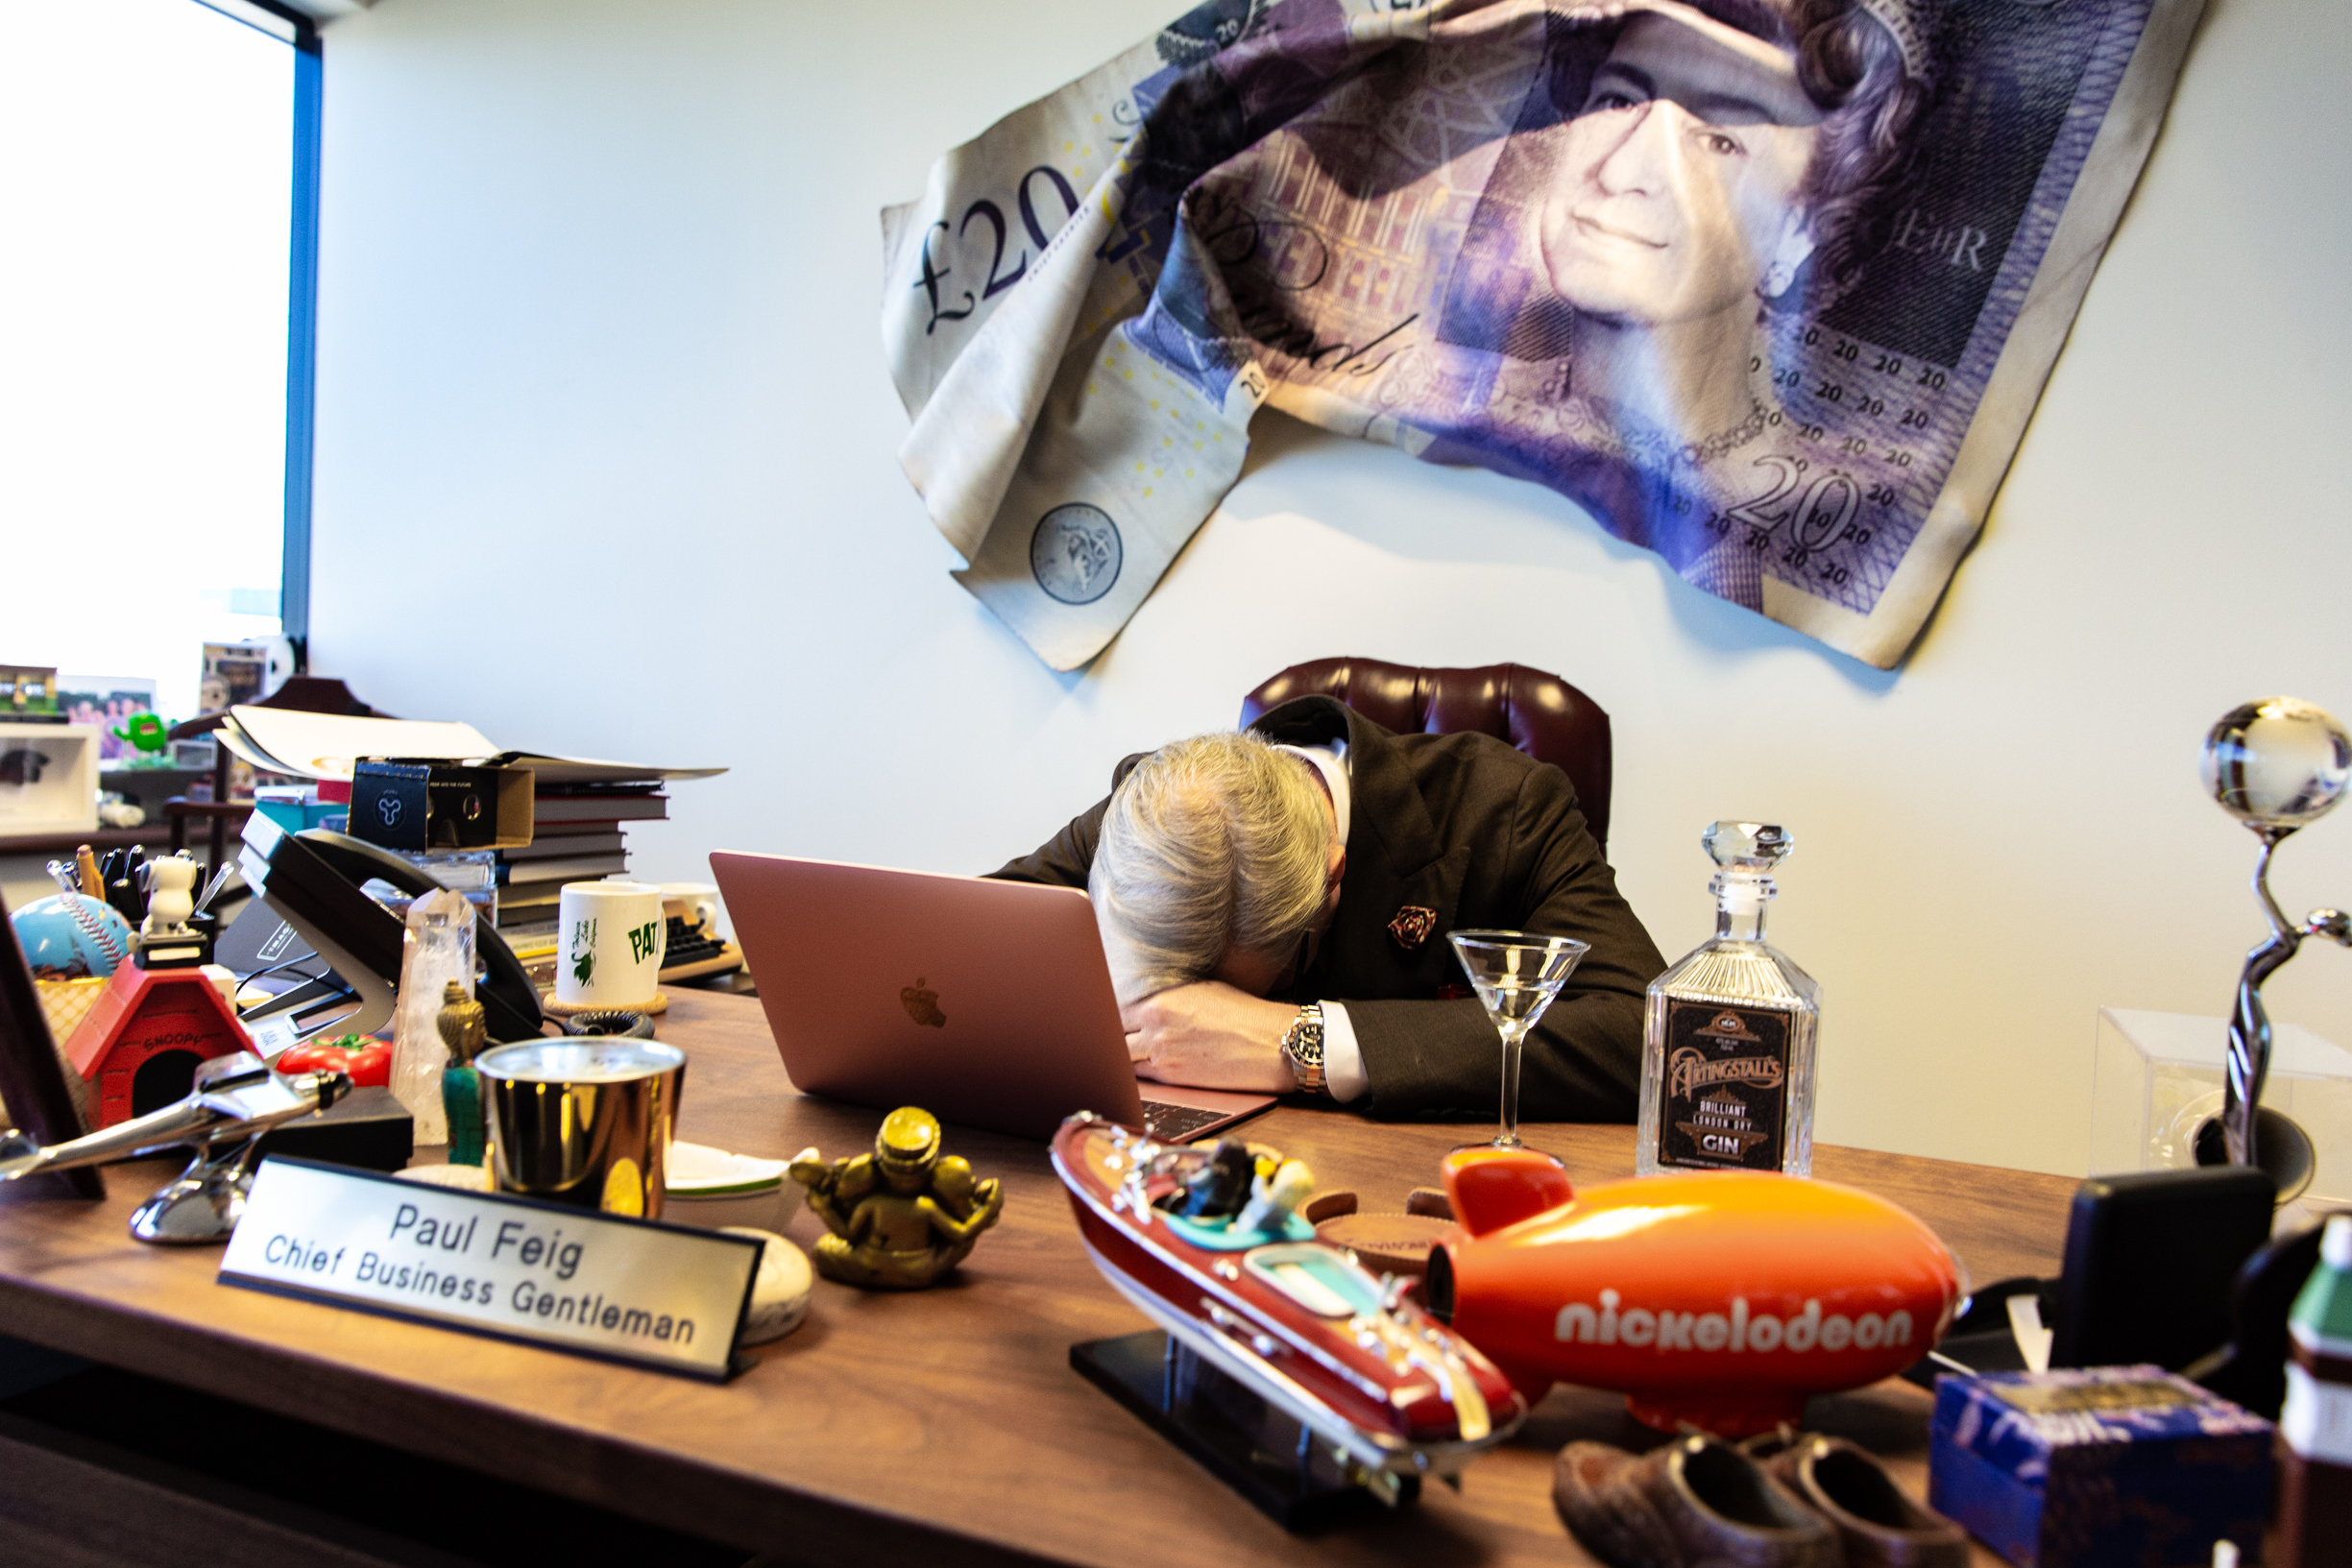 Paul Feig at his desk